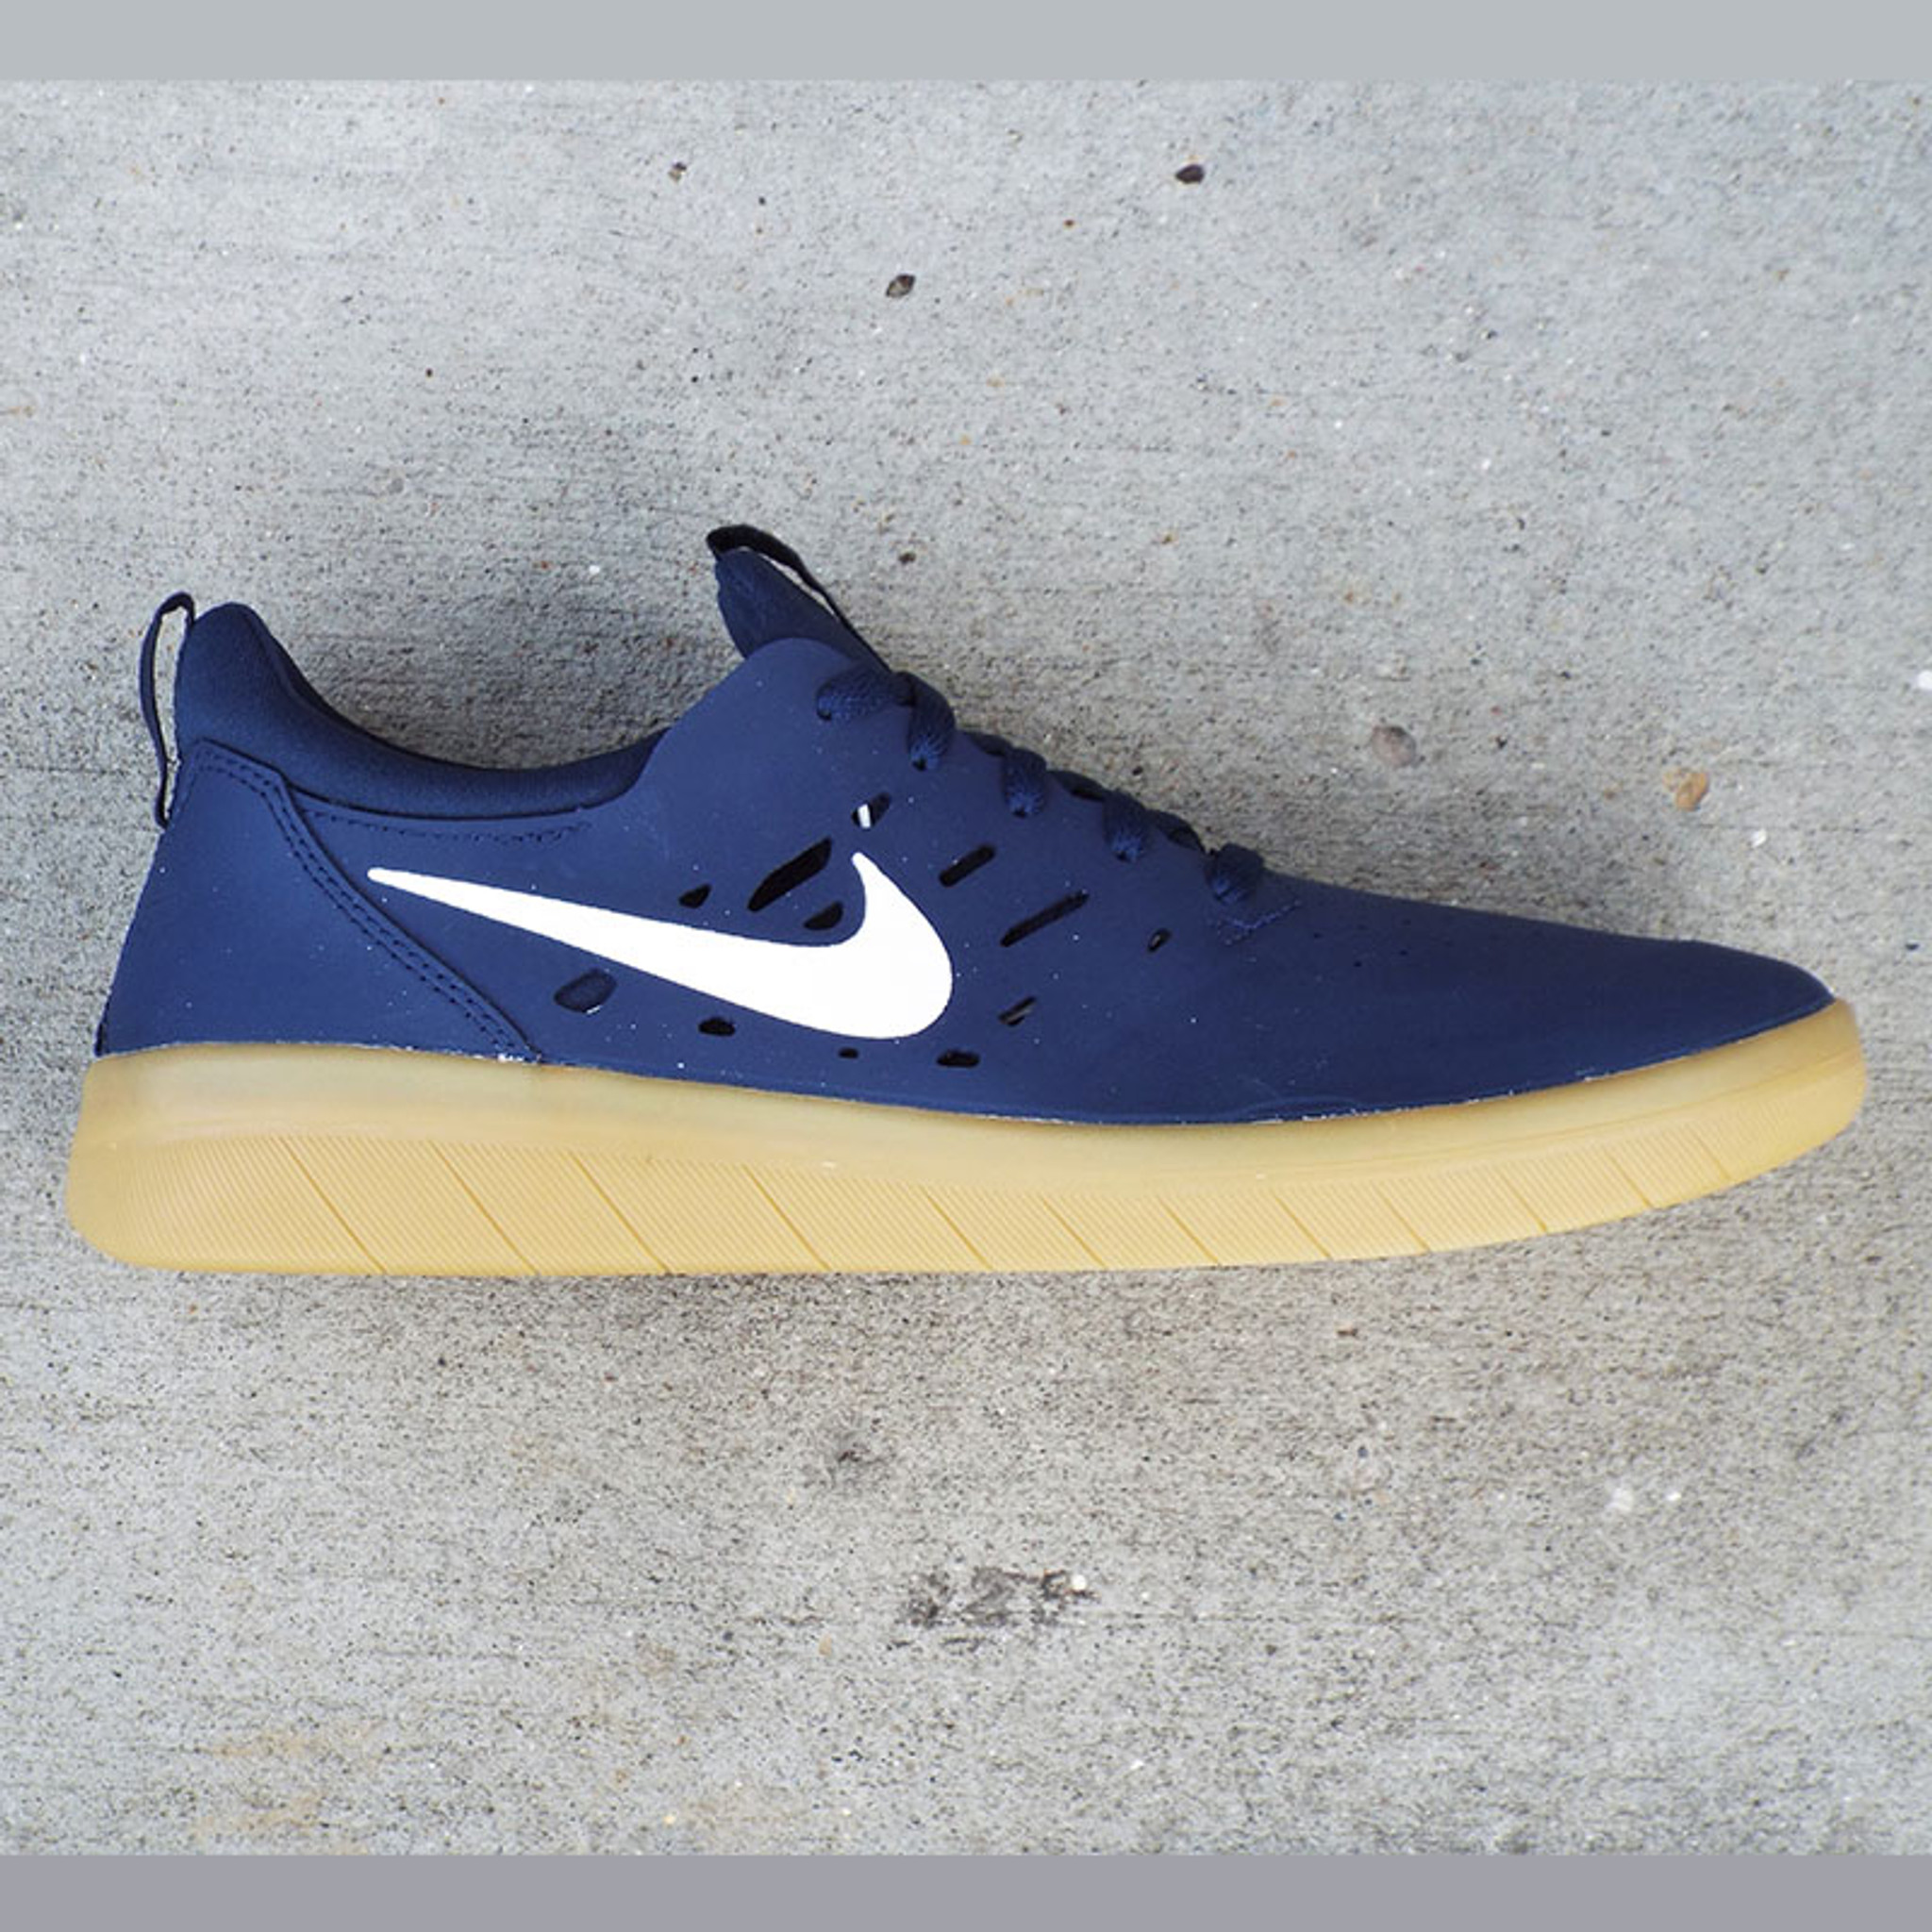 genuine shoes first look authentic quality Nike SB Nyjah Free Shoes - Midnight Navy/Summit White-Midnight Navy